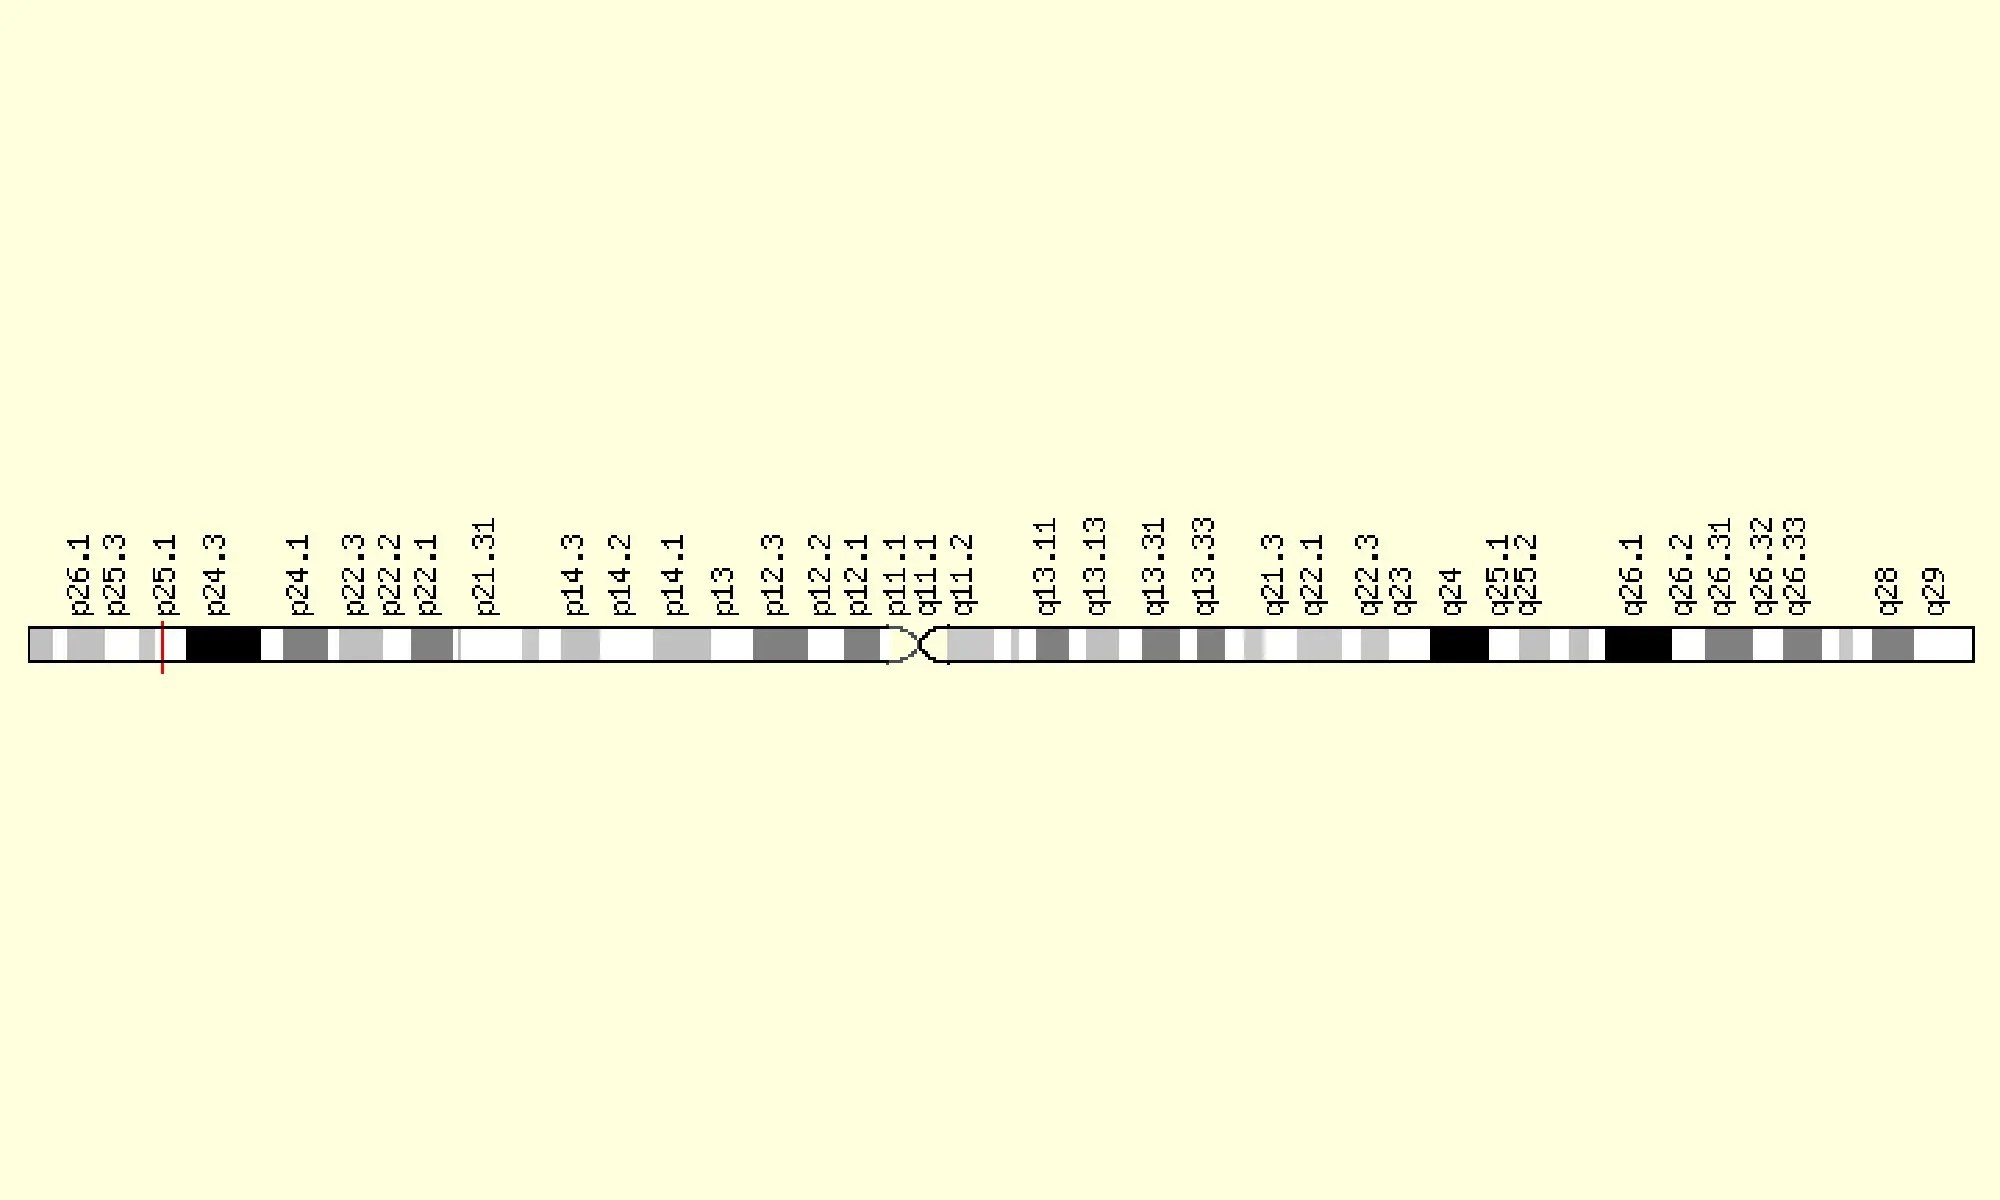 image of WNT7A Gene in genomic location